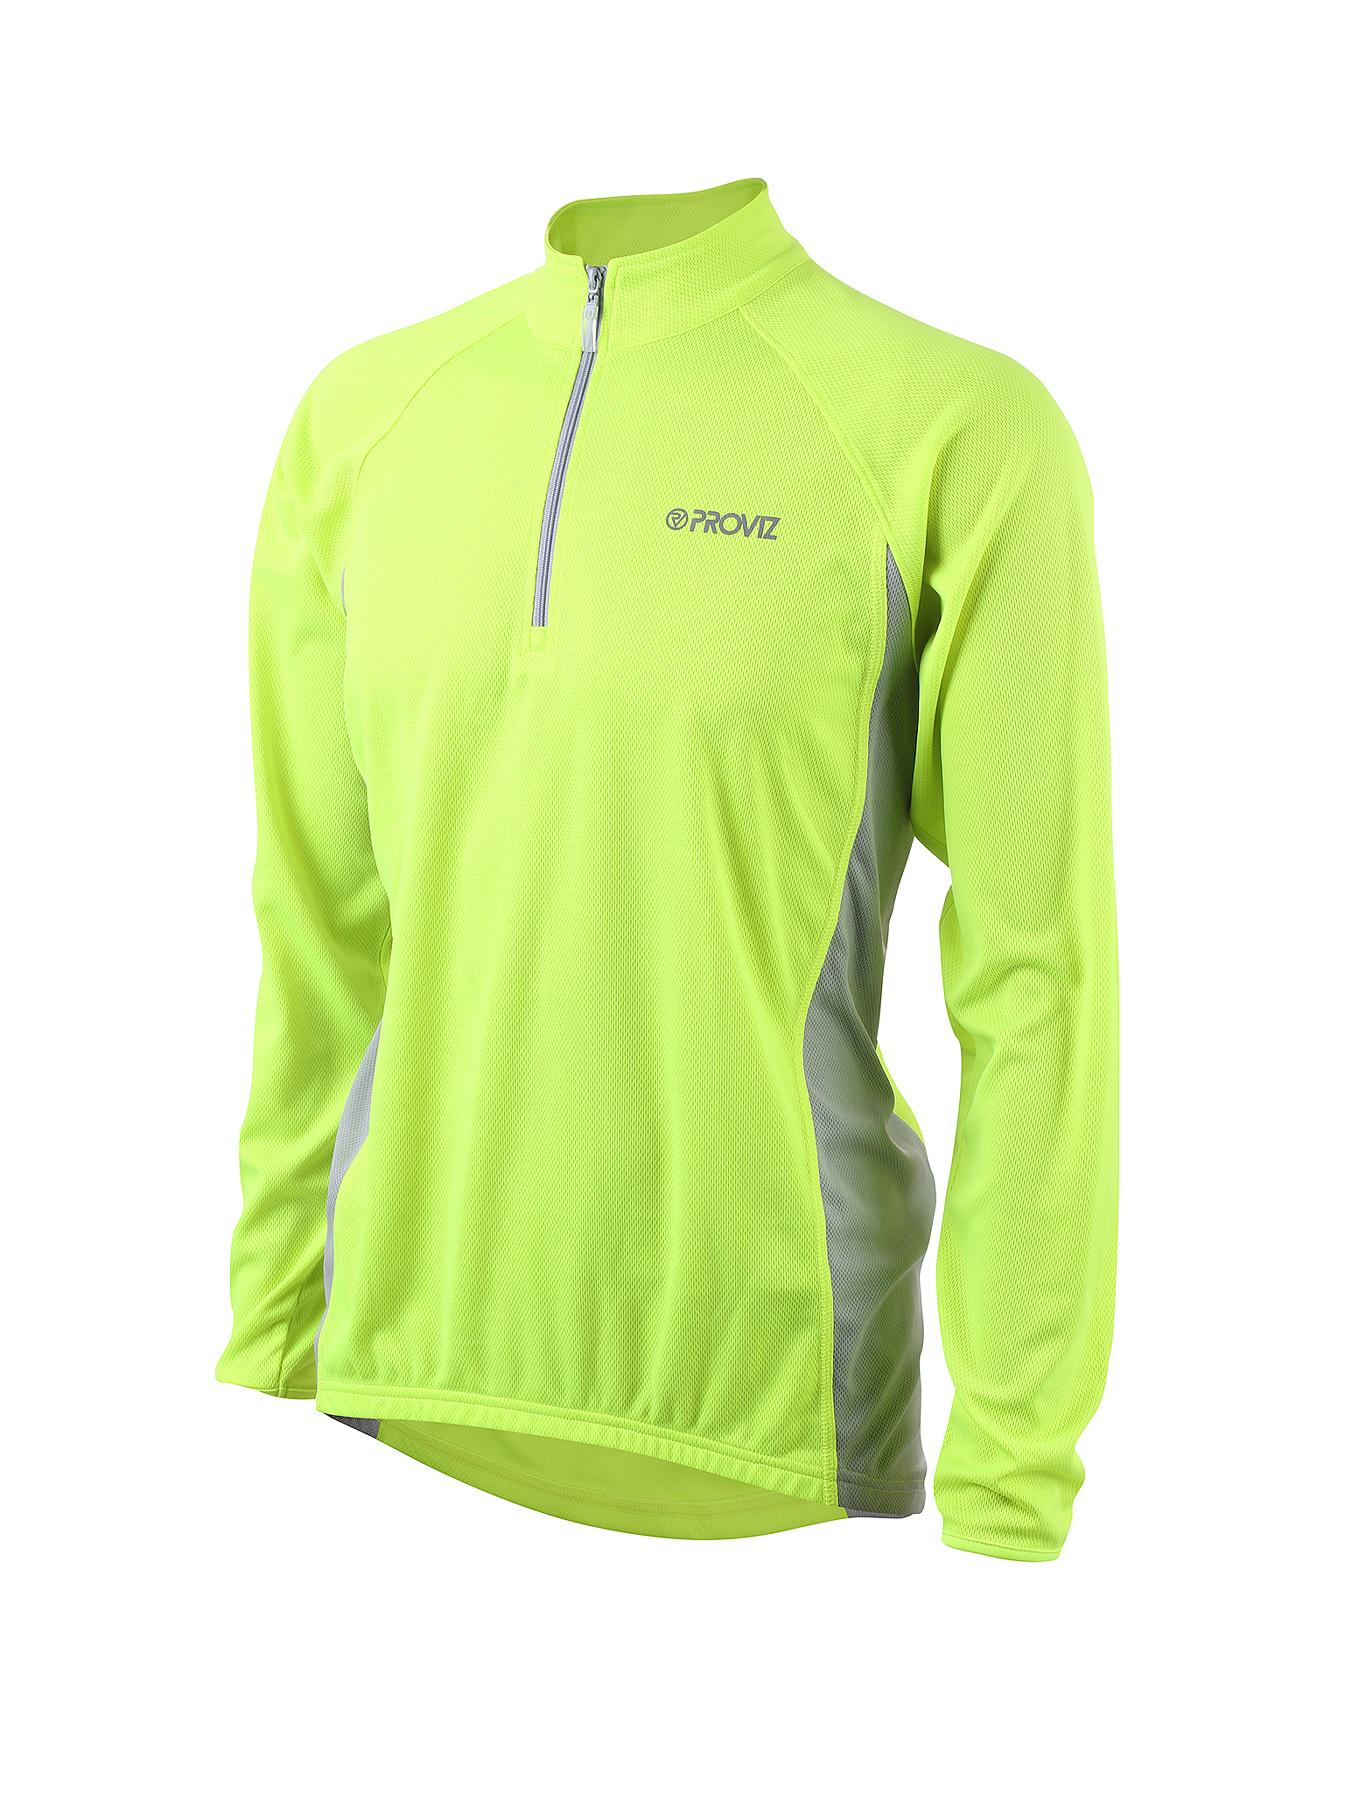 PROVIZ Long Sleeved Mens High Vis Cycling Jersey - Yellow, Yellow